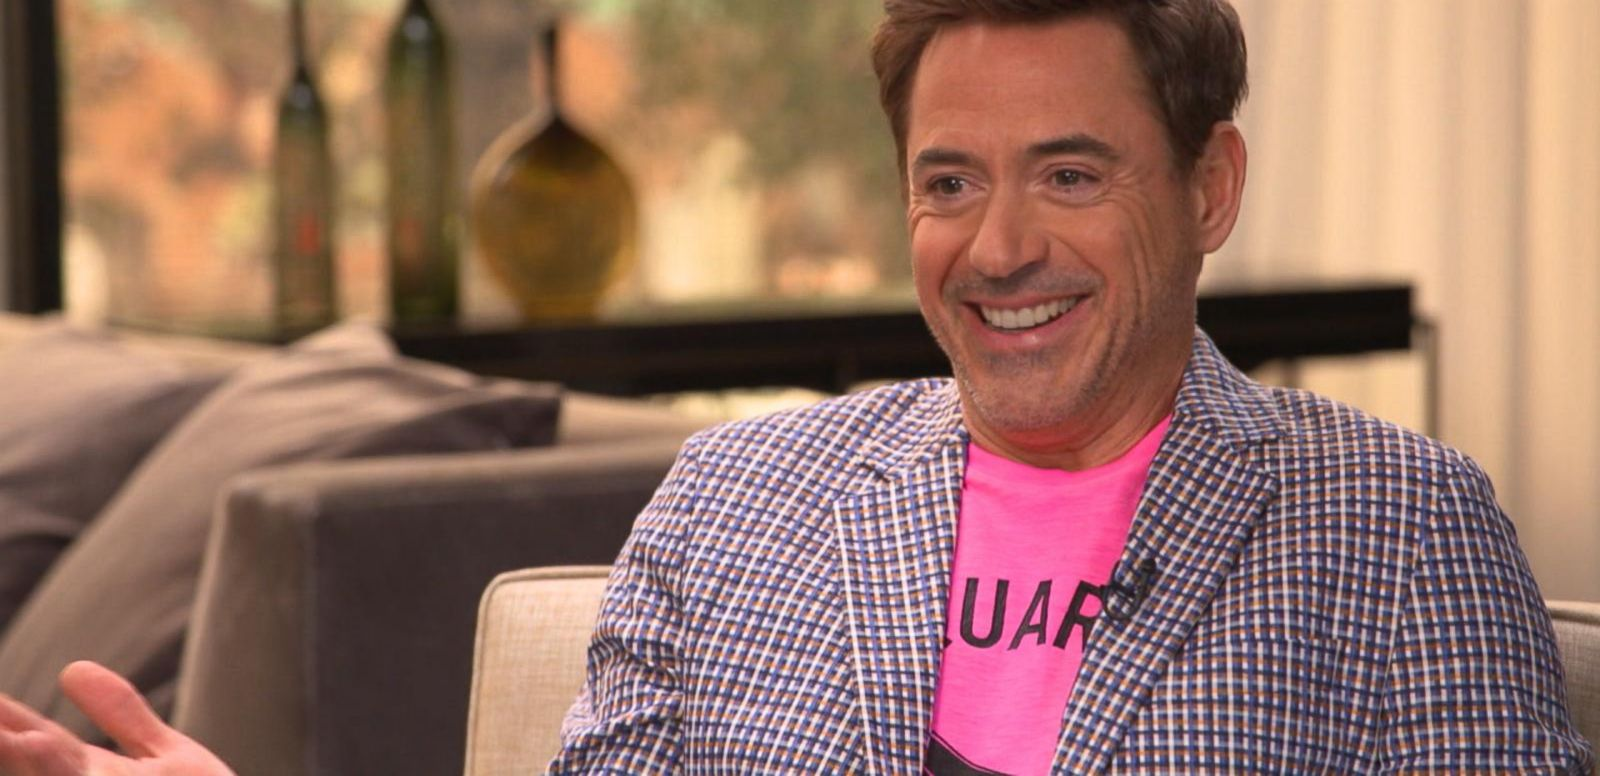 VIDEO: Robert Downey, Jr. Talks Playing Iron Man in Captain America: Civil War